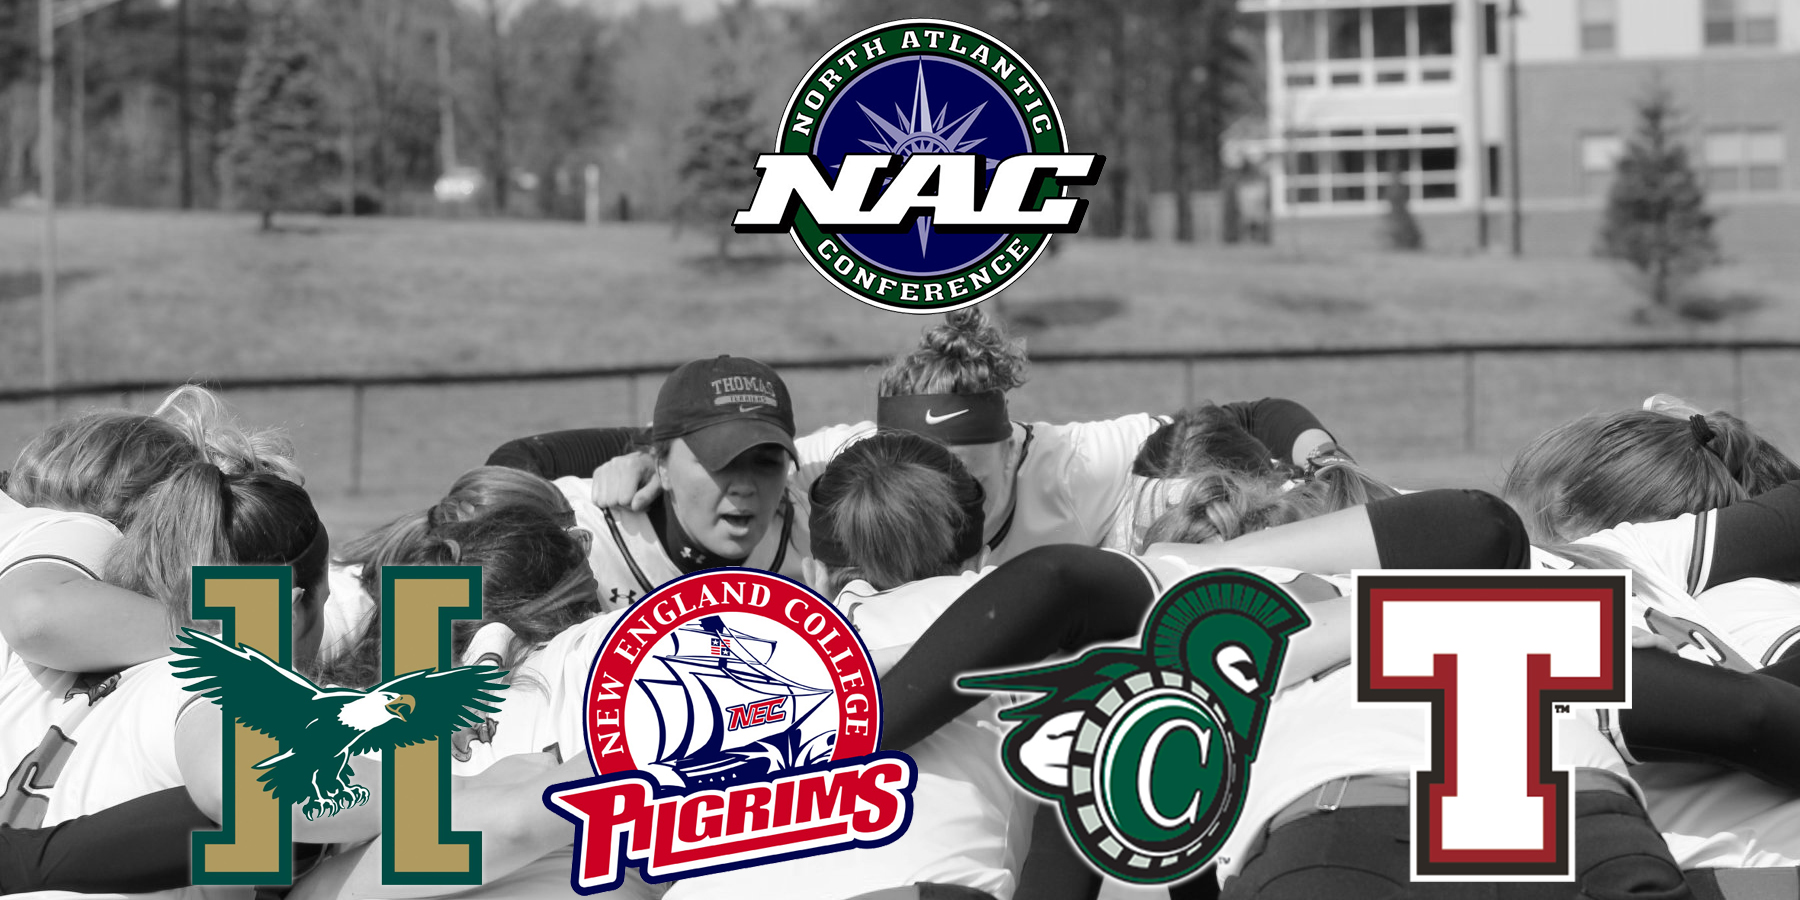 PREVIEW: Softball Enters NAC Tournament This Weekend as No. 4 Seed